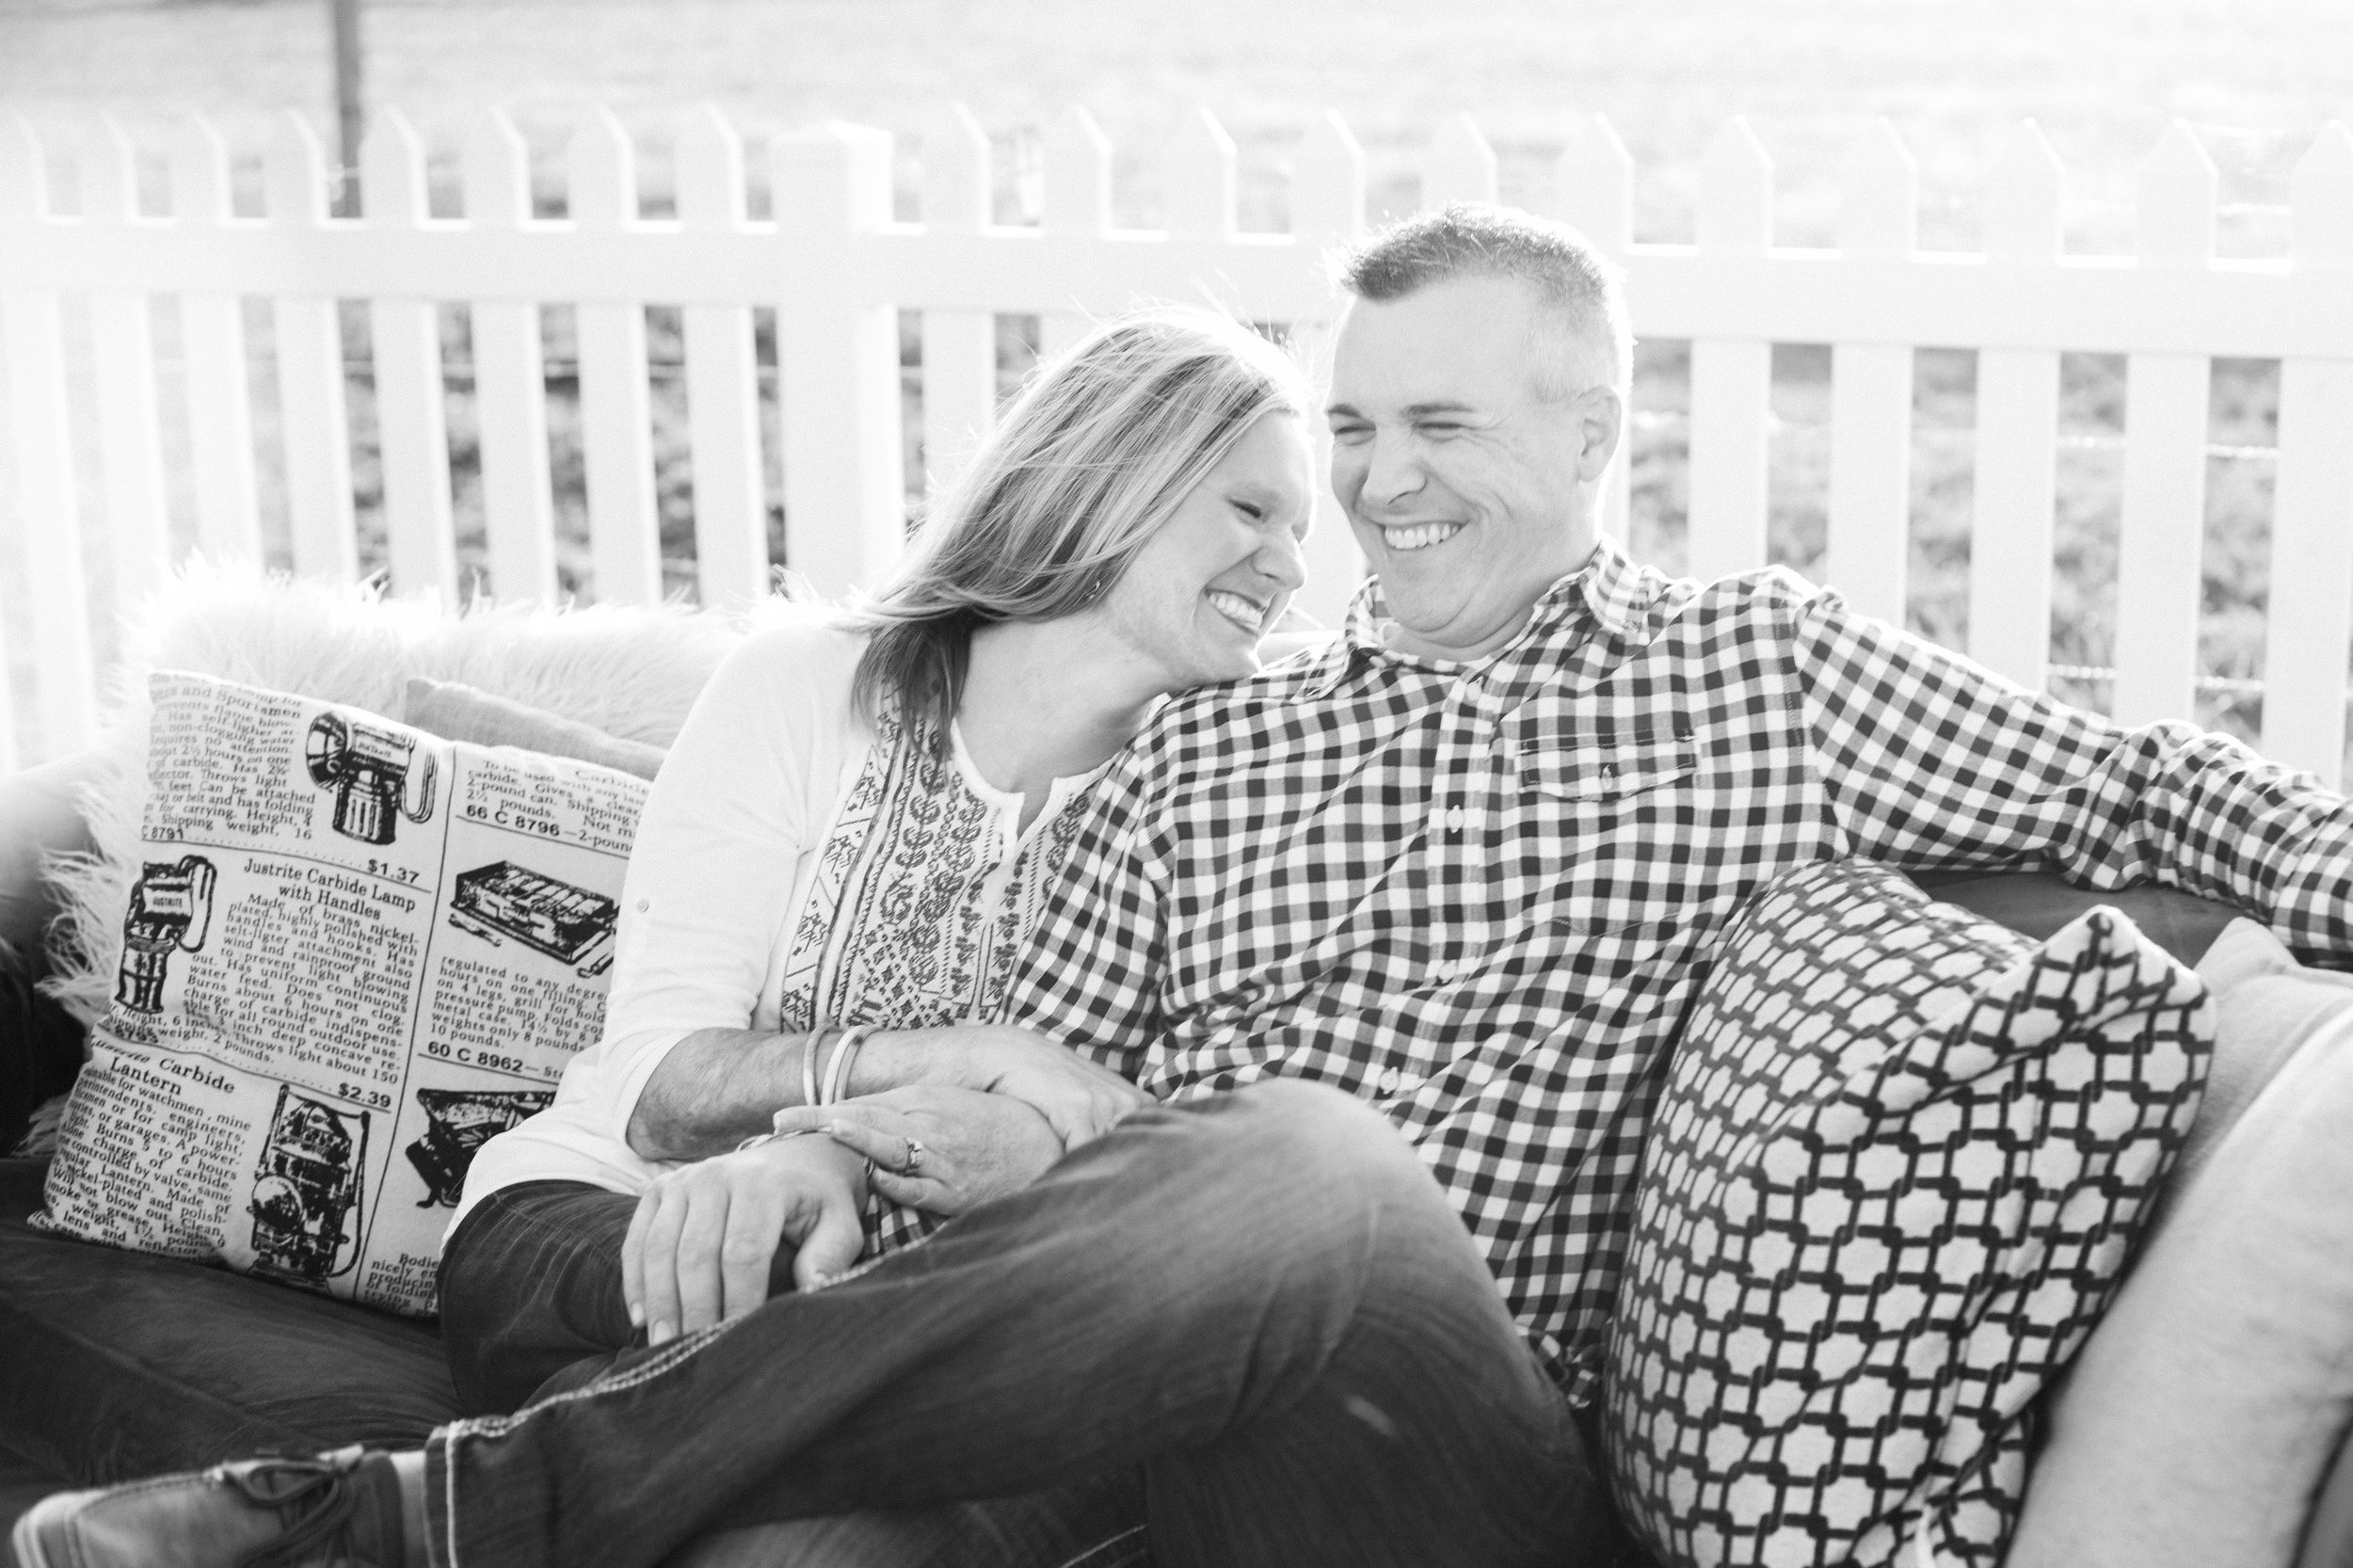 View More: http://malloryhallphotography.pass.us/meadowsfamily2015fallmini